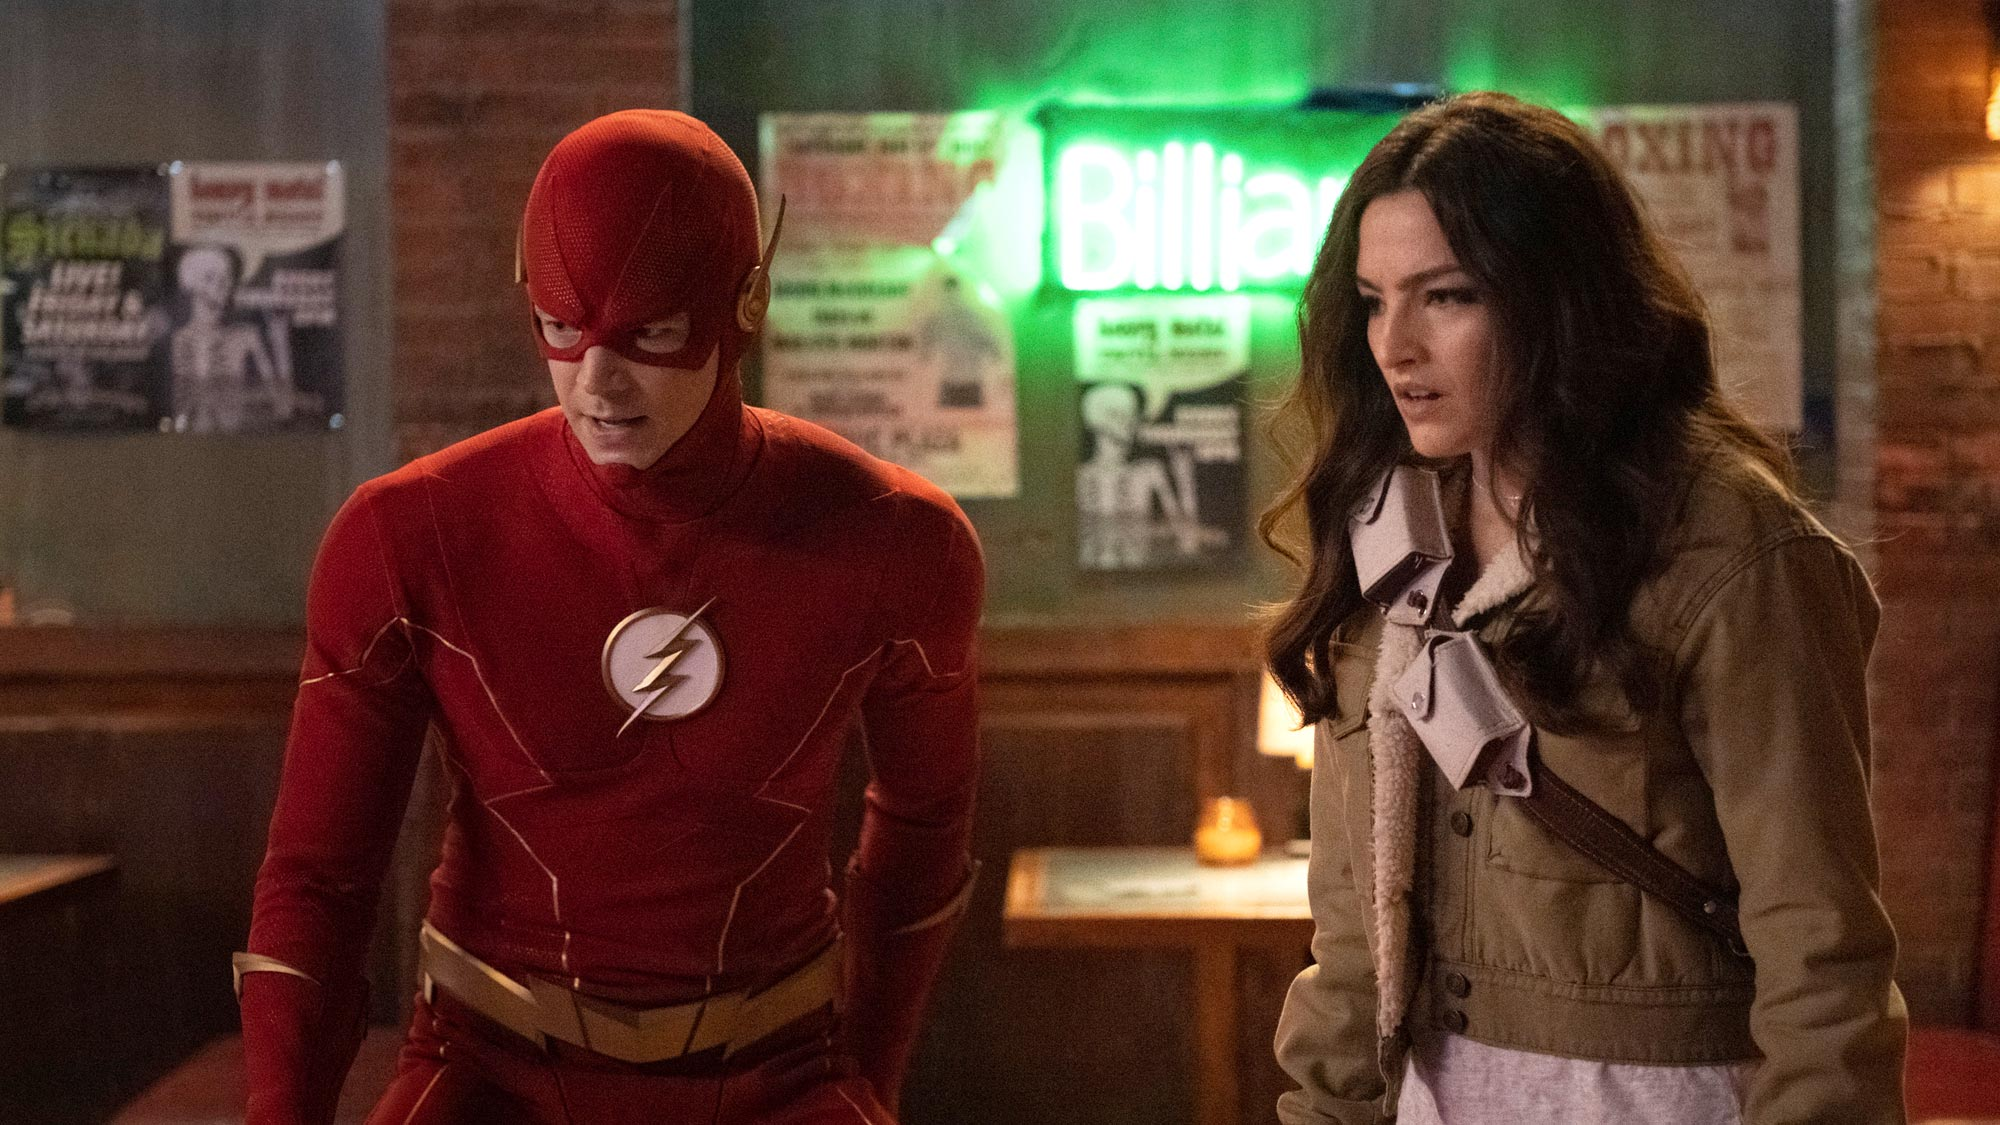 The Flash Season 7 Episode 14: Release Date, Promo And Watch Online